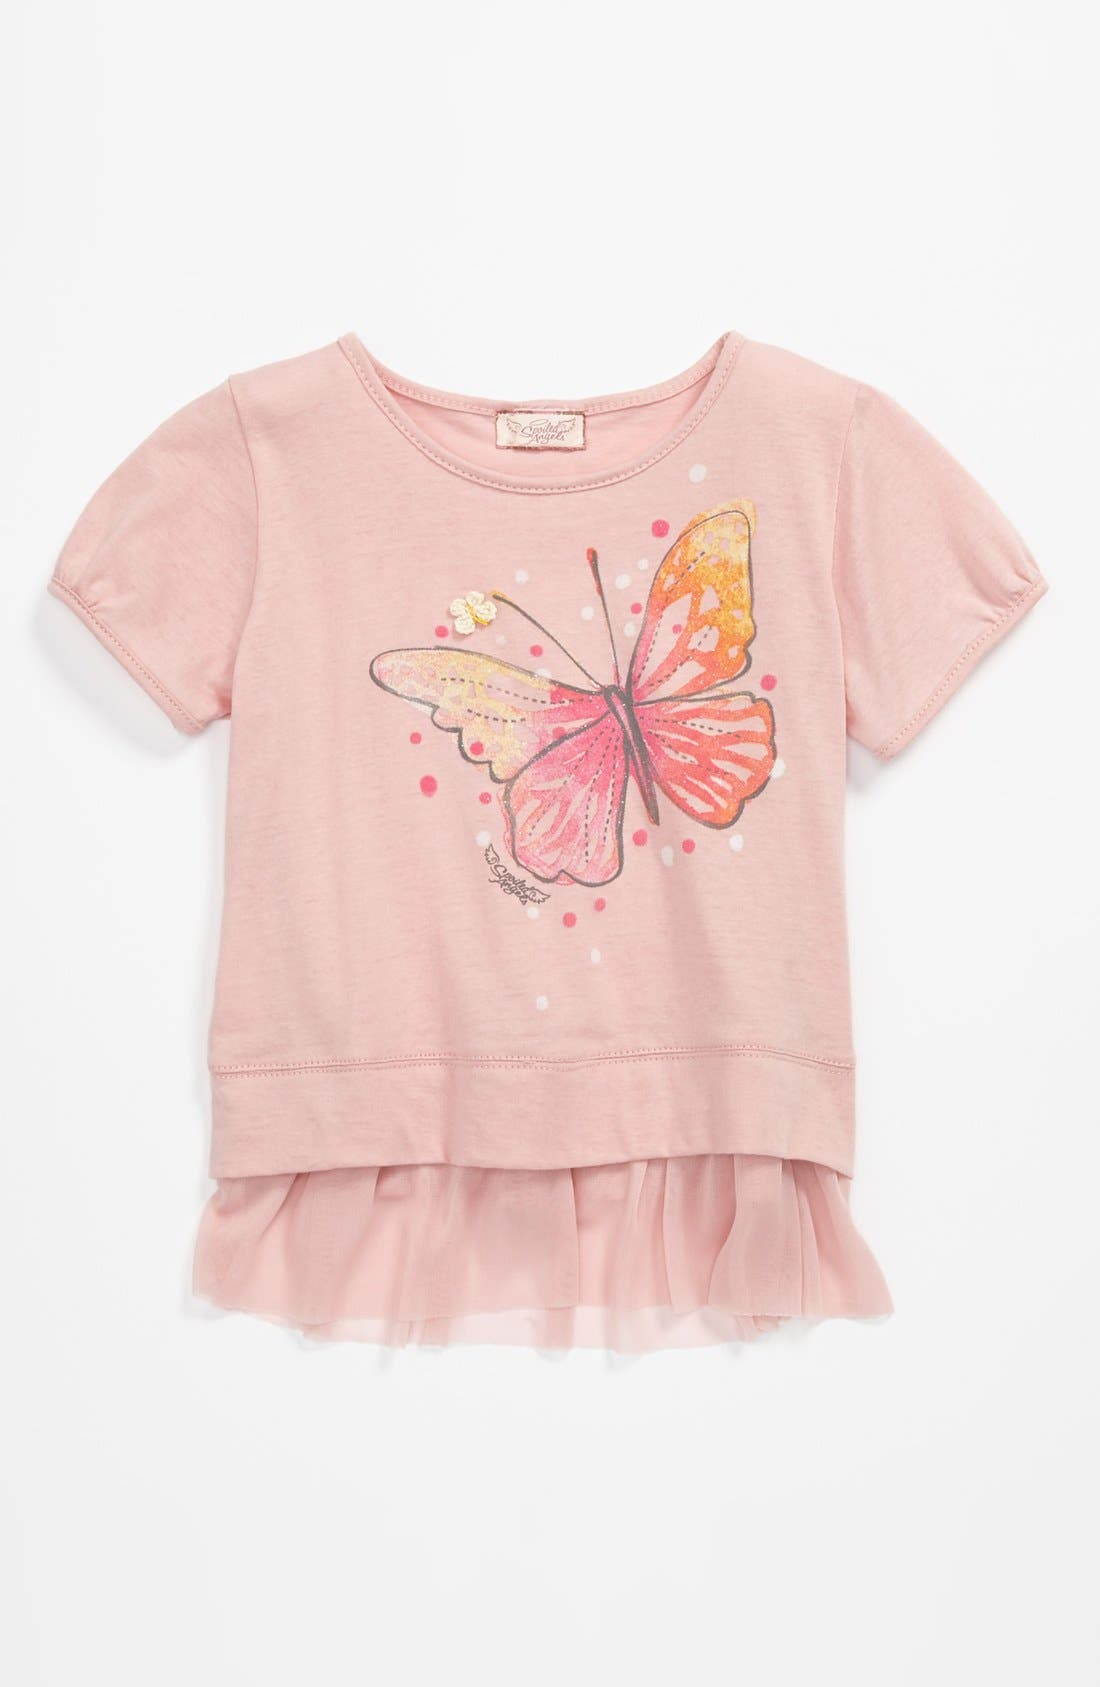 Alternate Image 1 Selected - Spoiled Angels 'Butterfly' Top (Toddler)